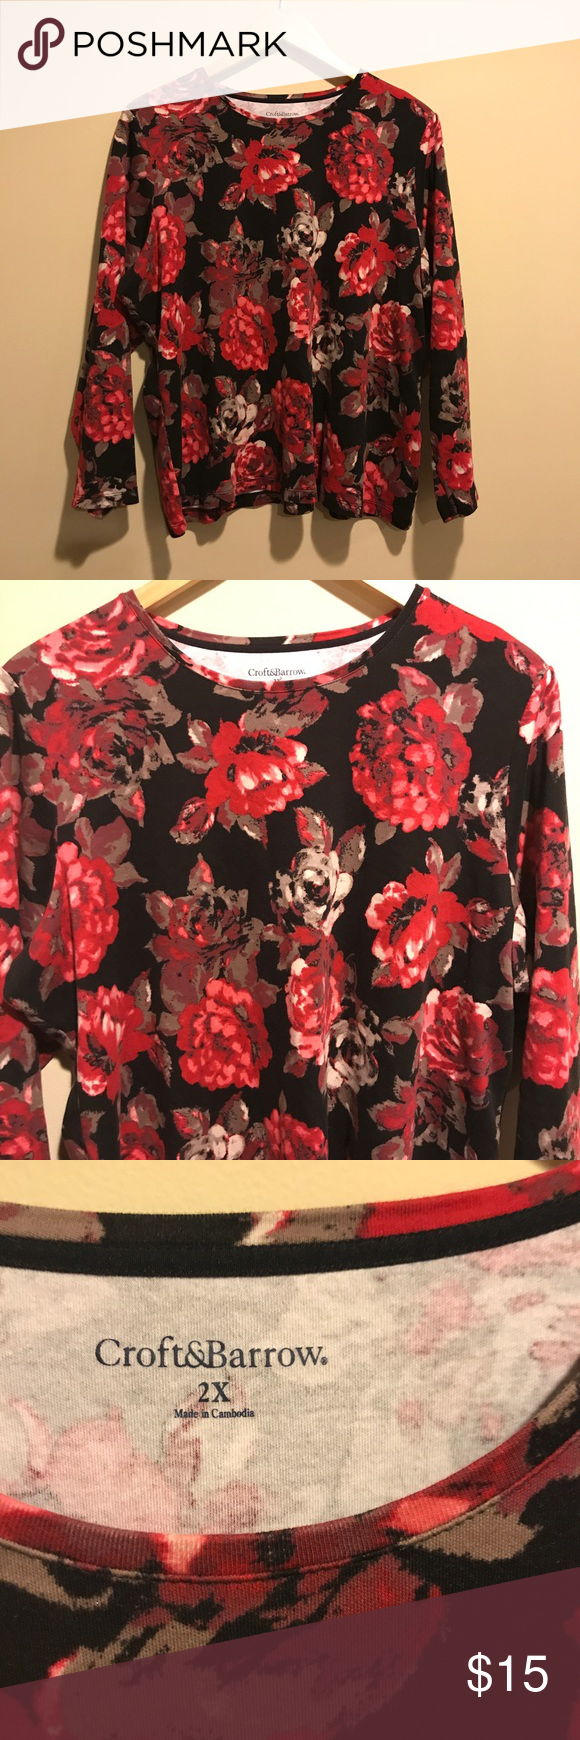 Croft & Barrow Floral Long Sleeve Top Size 2X - A5 Gently used. Plus Size. Length is approximately 24 inches and width is approximately 23 inches croft & barrow Tops Tees - Long Sleeve